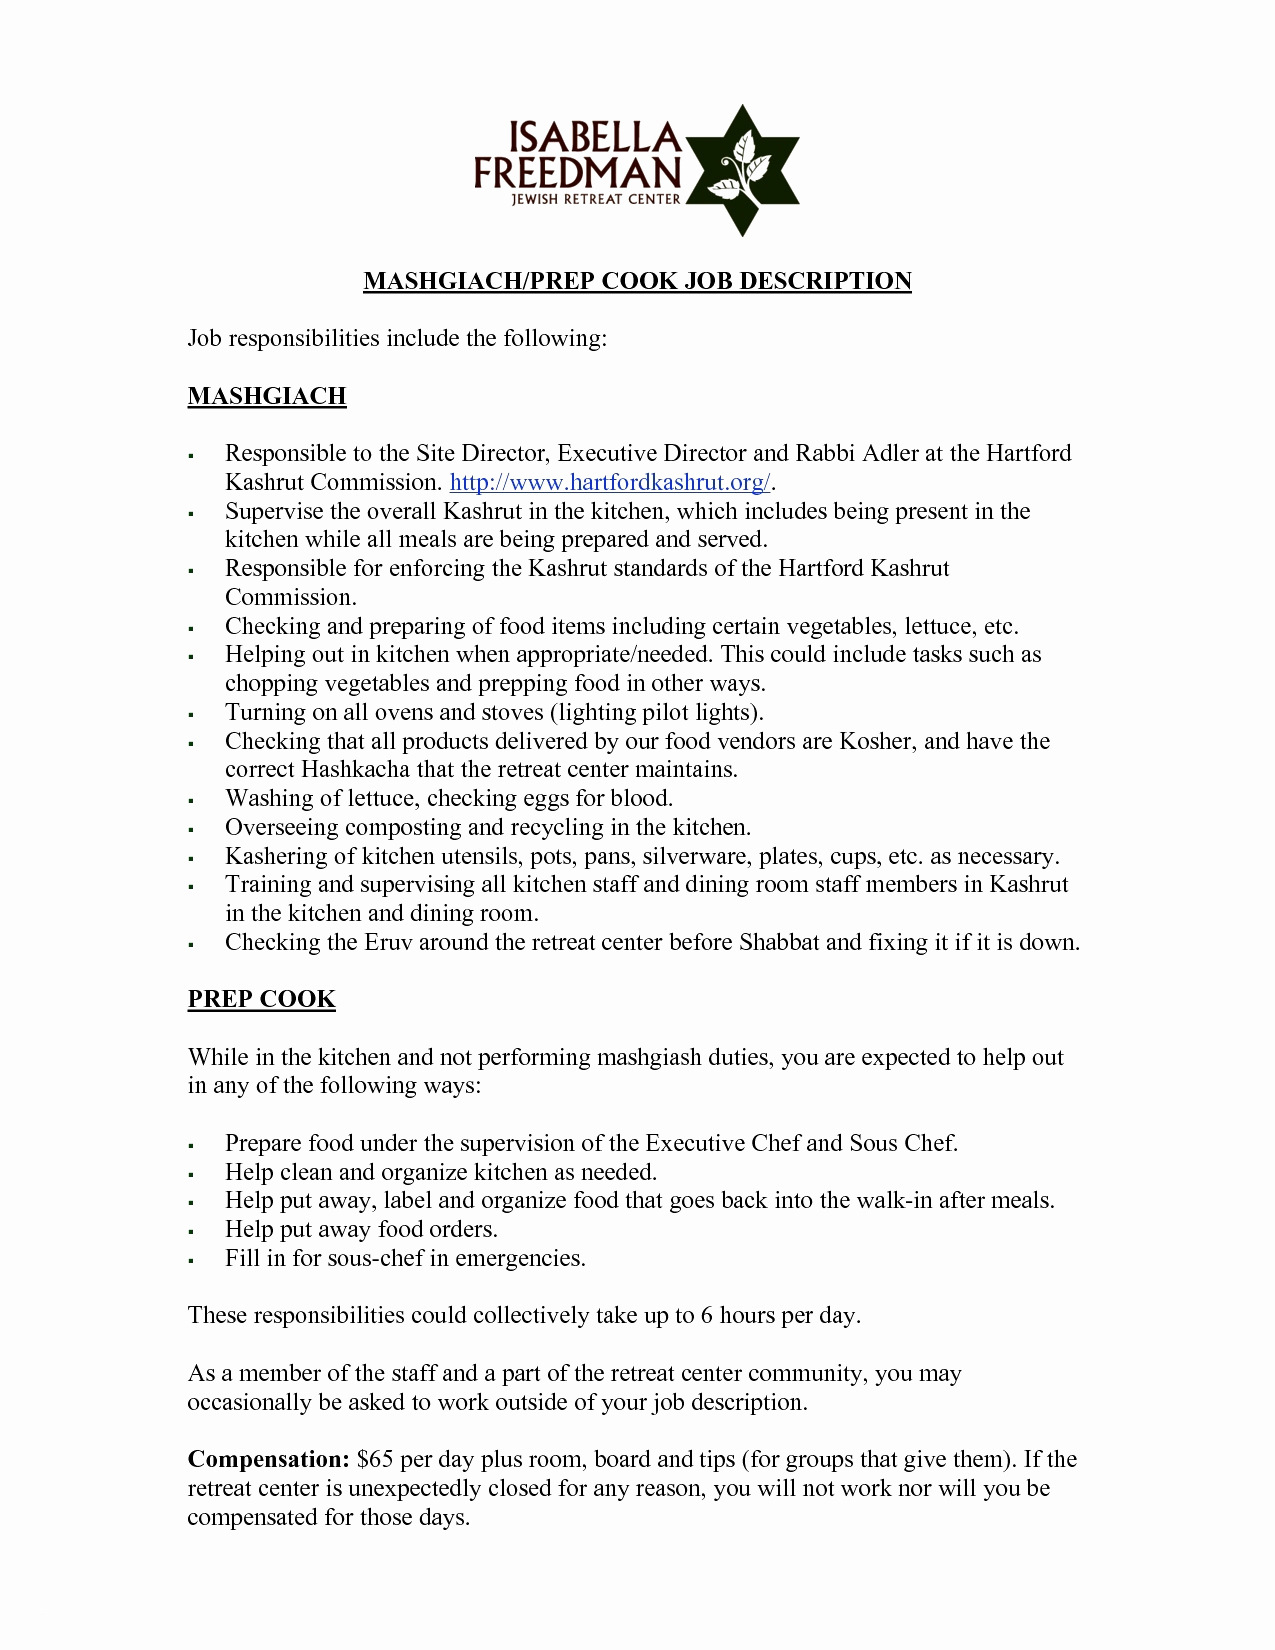 Letter Outline Template - Basic Resume Outline Unique Resume and Cover Letter Template Fresh